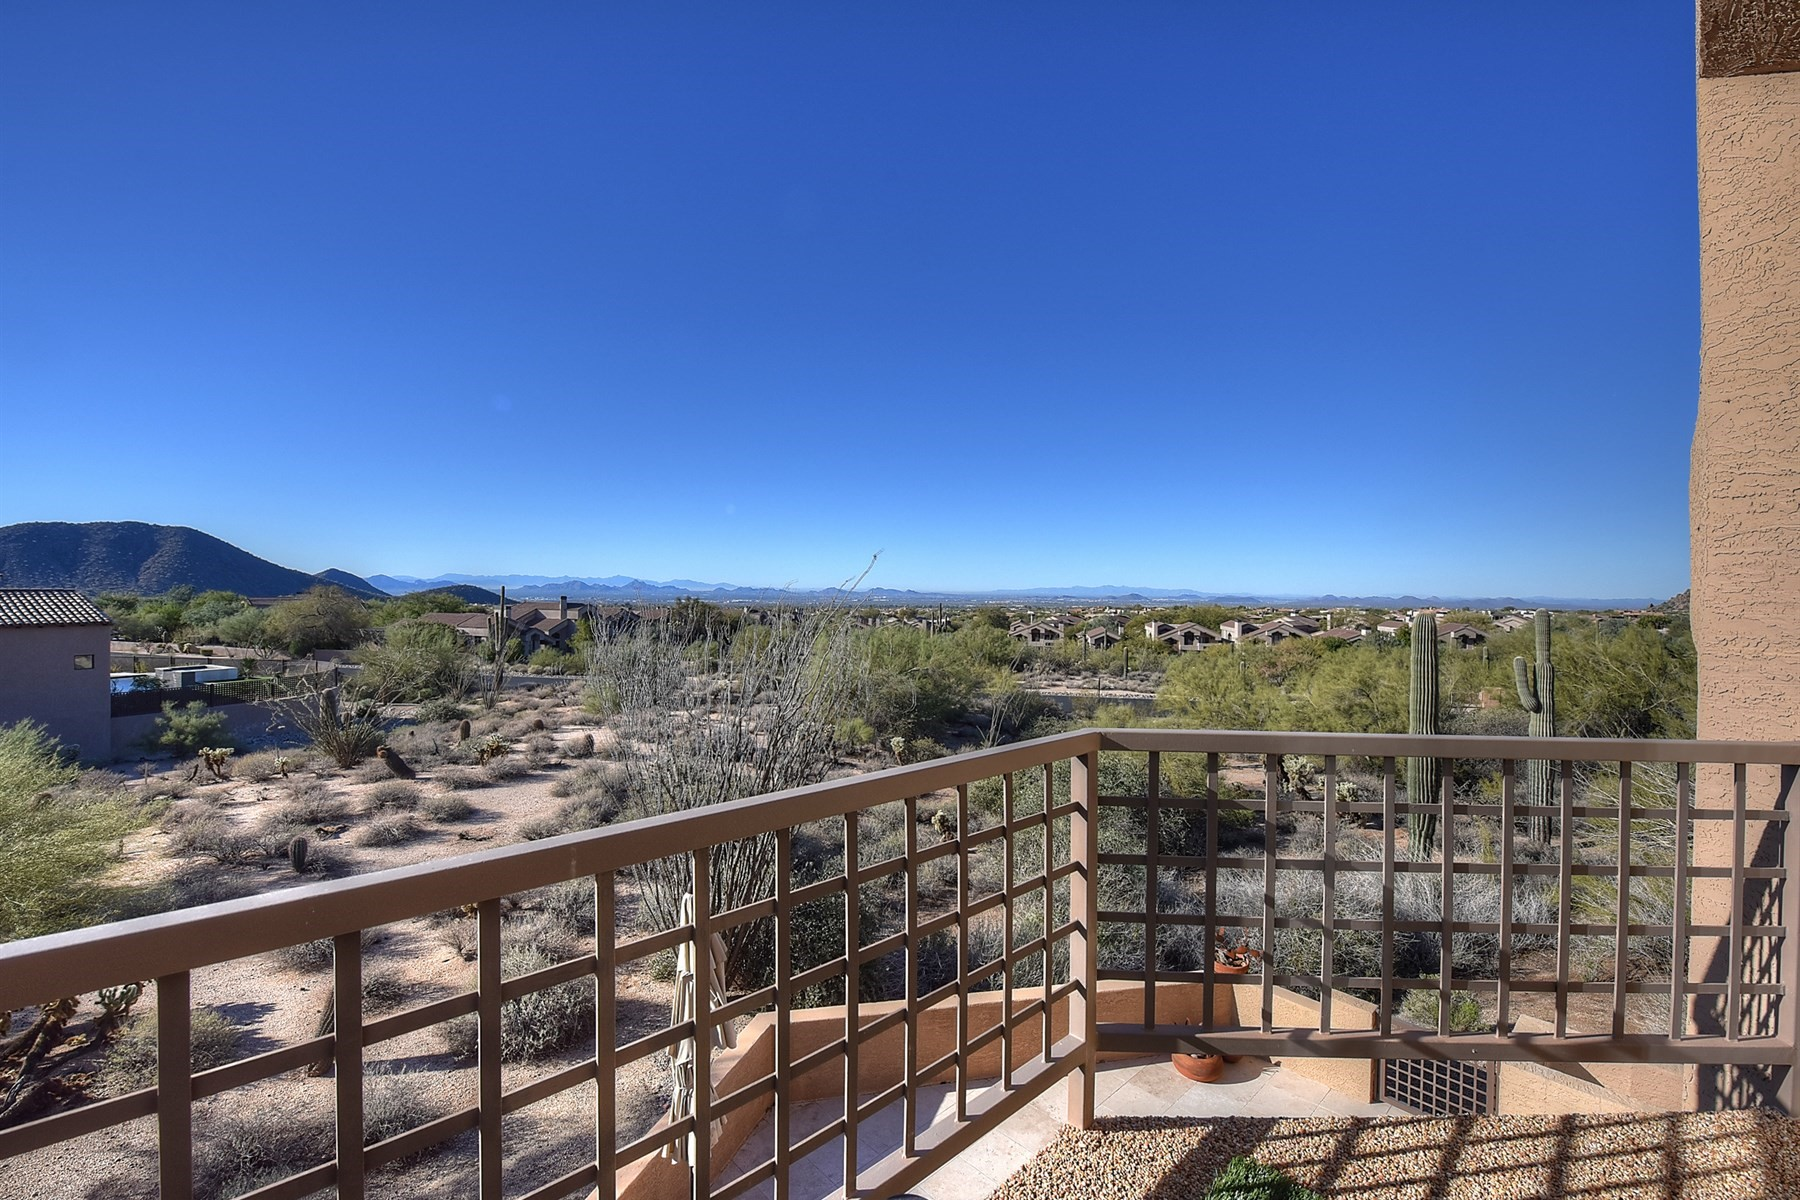 Maison unifamiliale pour l Vente à Stunning views at this private townhouse located in Skye Top at Troon Village 25555 N Windy Walk Dr #11 Scottsdale, Arizona, 85255 États-Unis